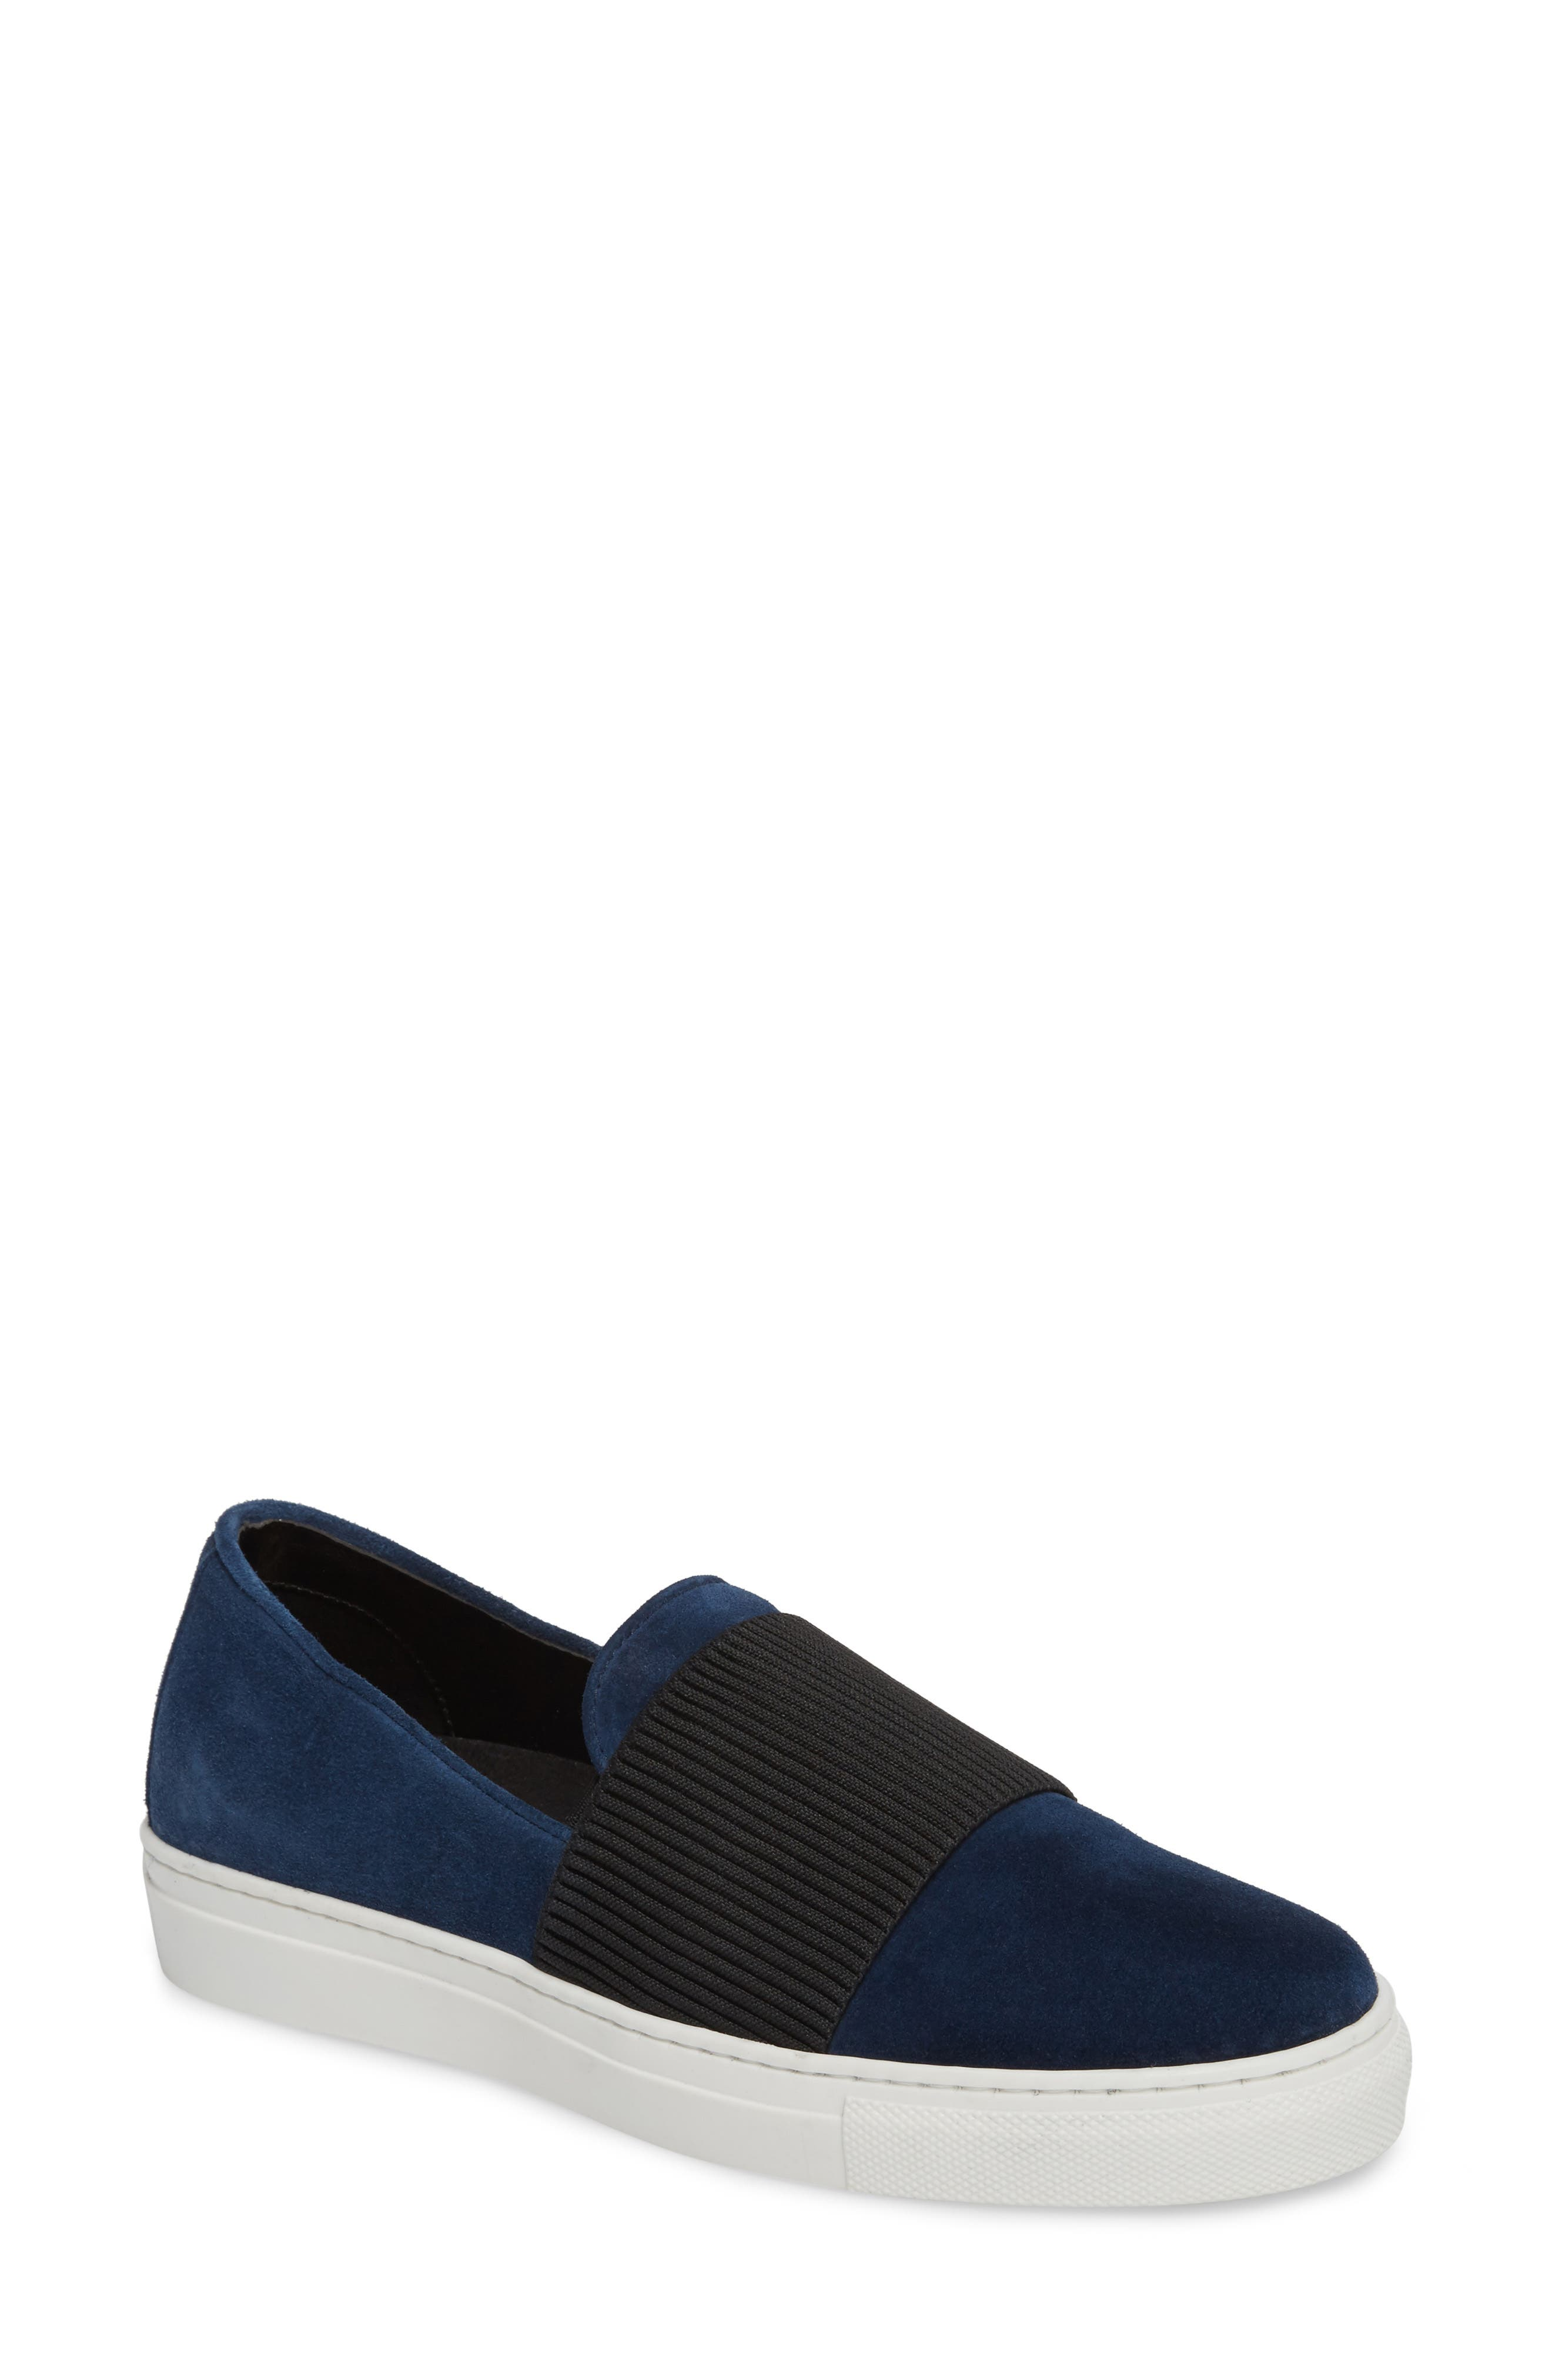 Otto Slip-On Sneaker,                         Main,                         color, Navy Suede